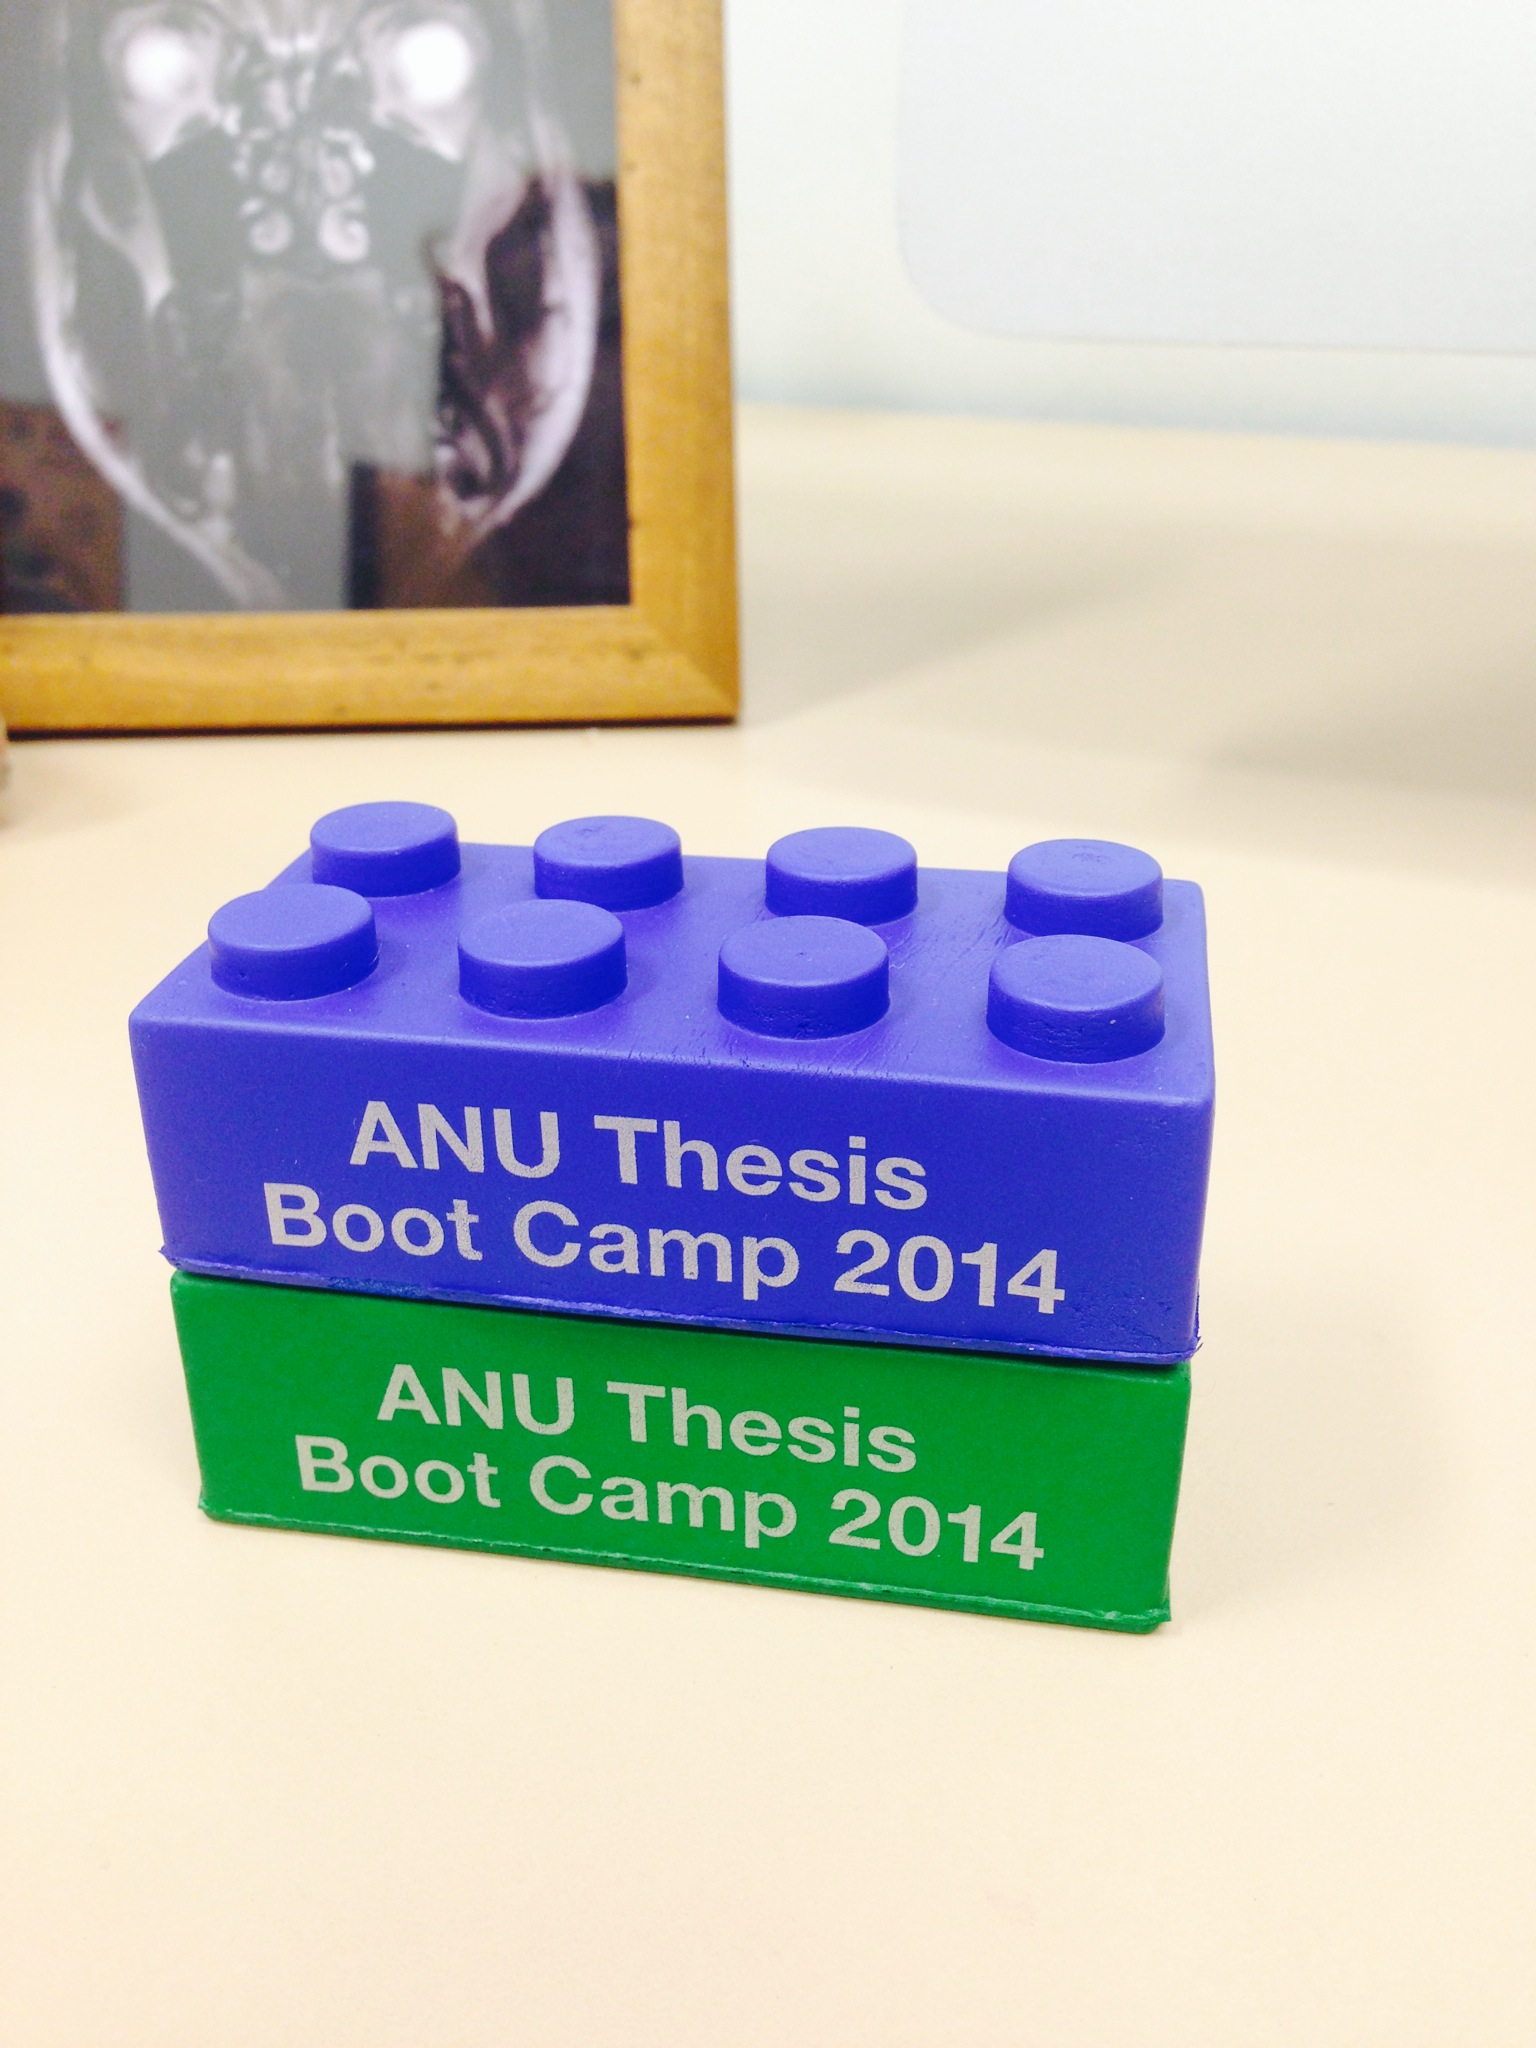 anu thesis boot camp Thesis bootcamp is modelled after a very successful workshop it was the pilot program of what will now be a workshop run four times a year at the anu.